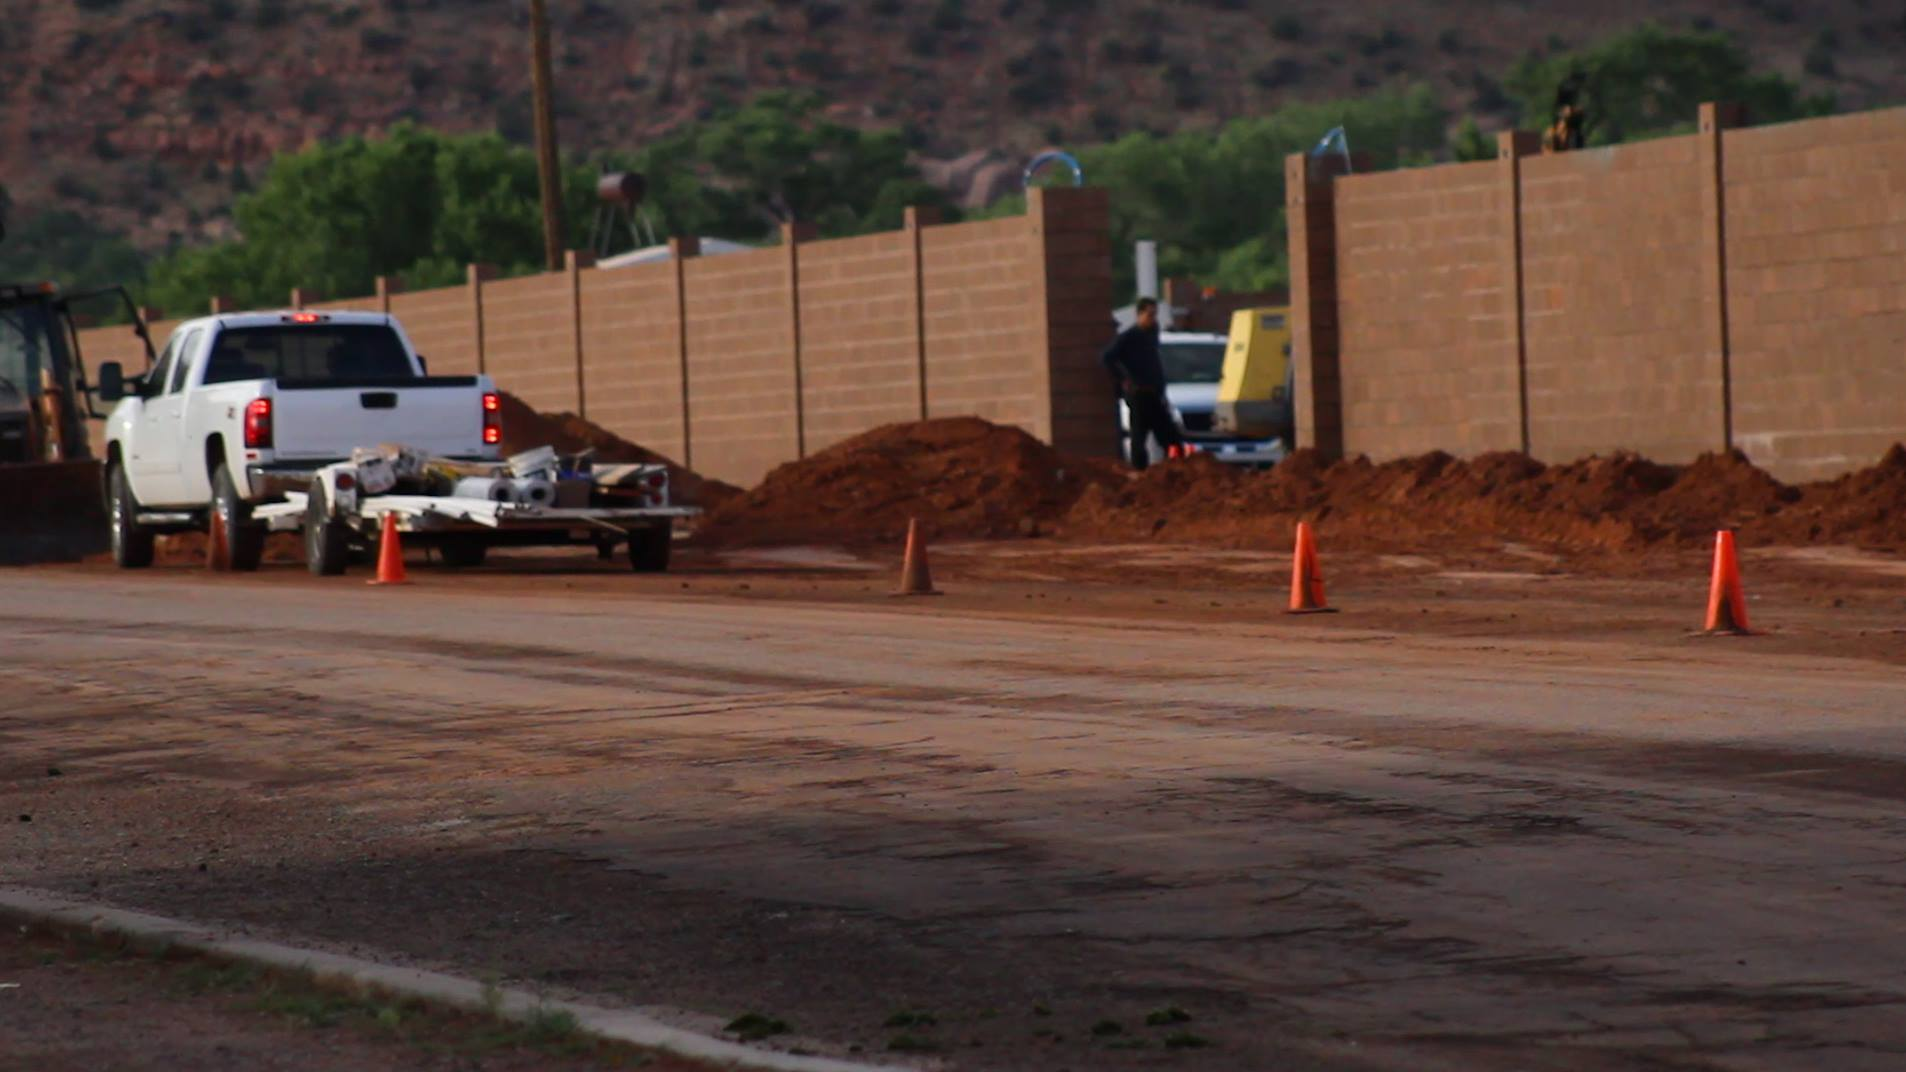 Wall nears completion on July 4 surrounding the Leroy S. Johnson meeting house of the FLDS Church, Colorado City, Arizona, July 4, 2015 | Photo by Nataly Burdick, St. George News